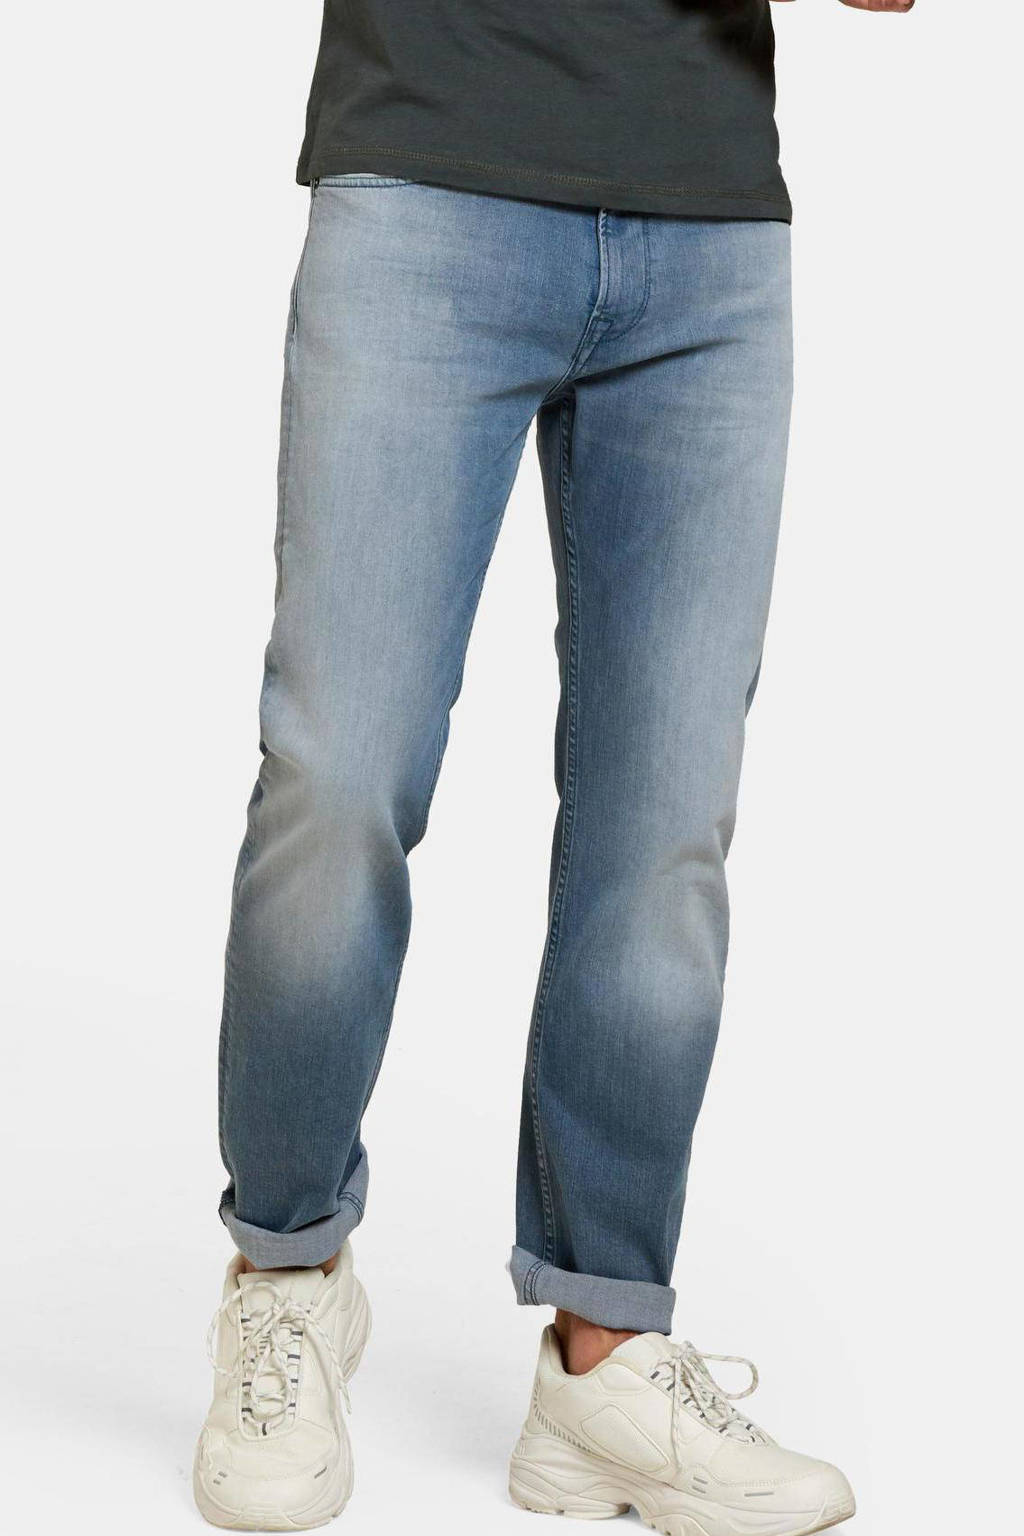 Shoeby Refill straight fit jeans Lewis Sault FANTASY, Fantasy